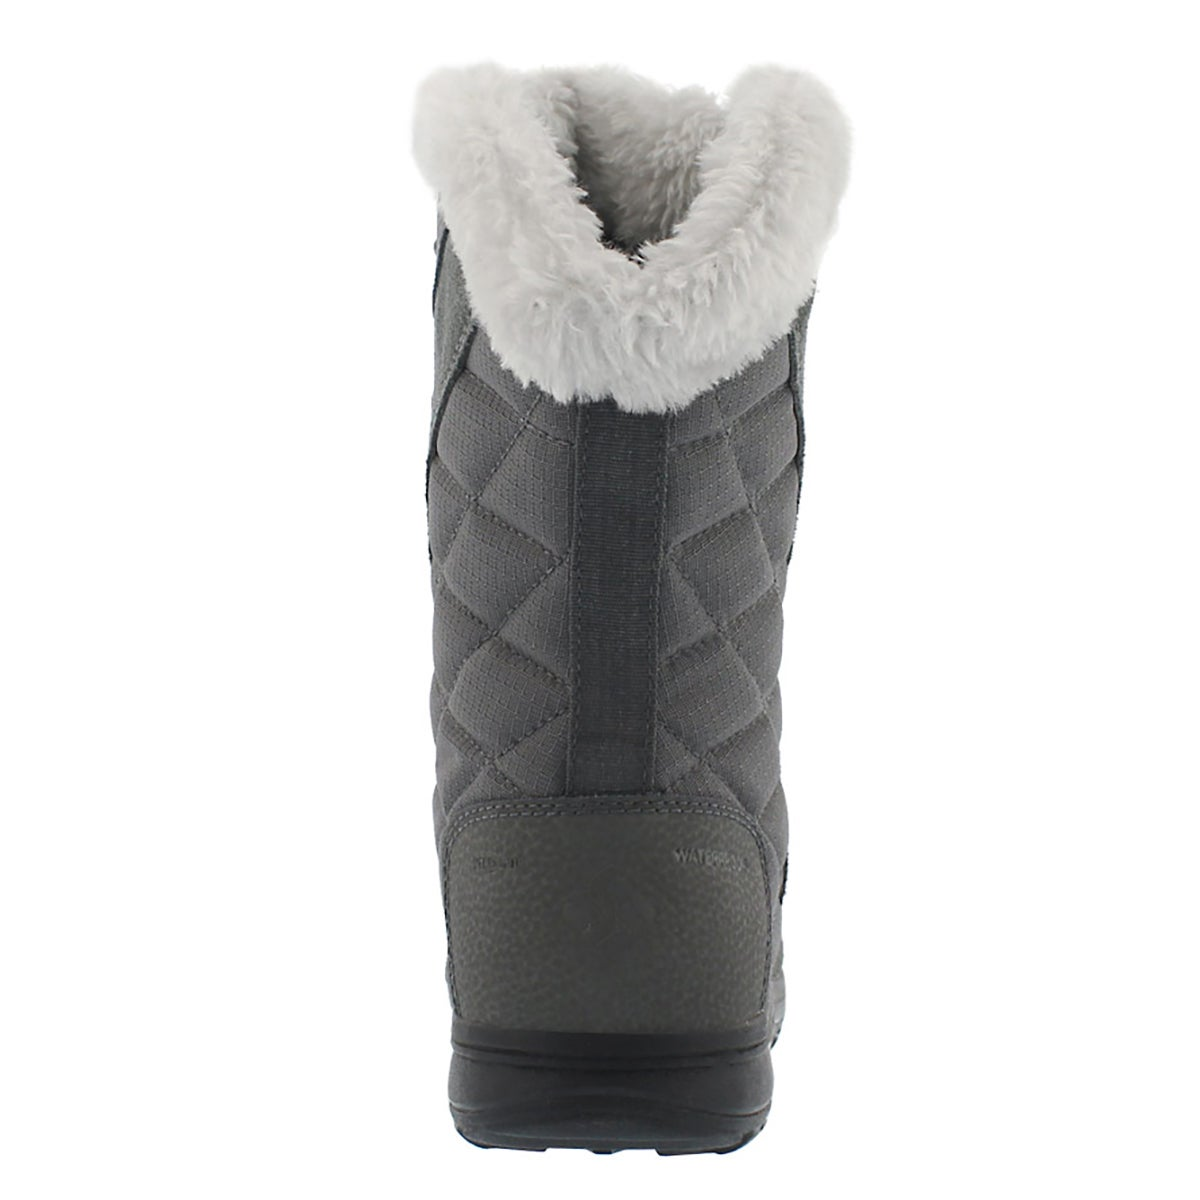 Lds Ice Maiden II shale lace up wtr boot